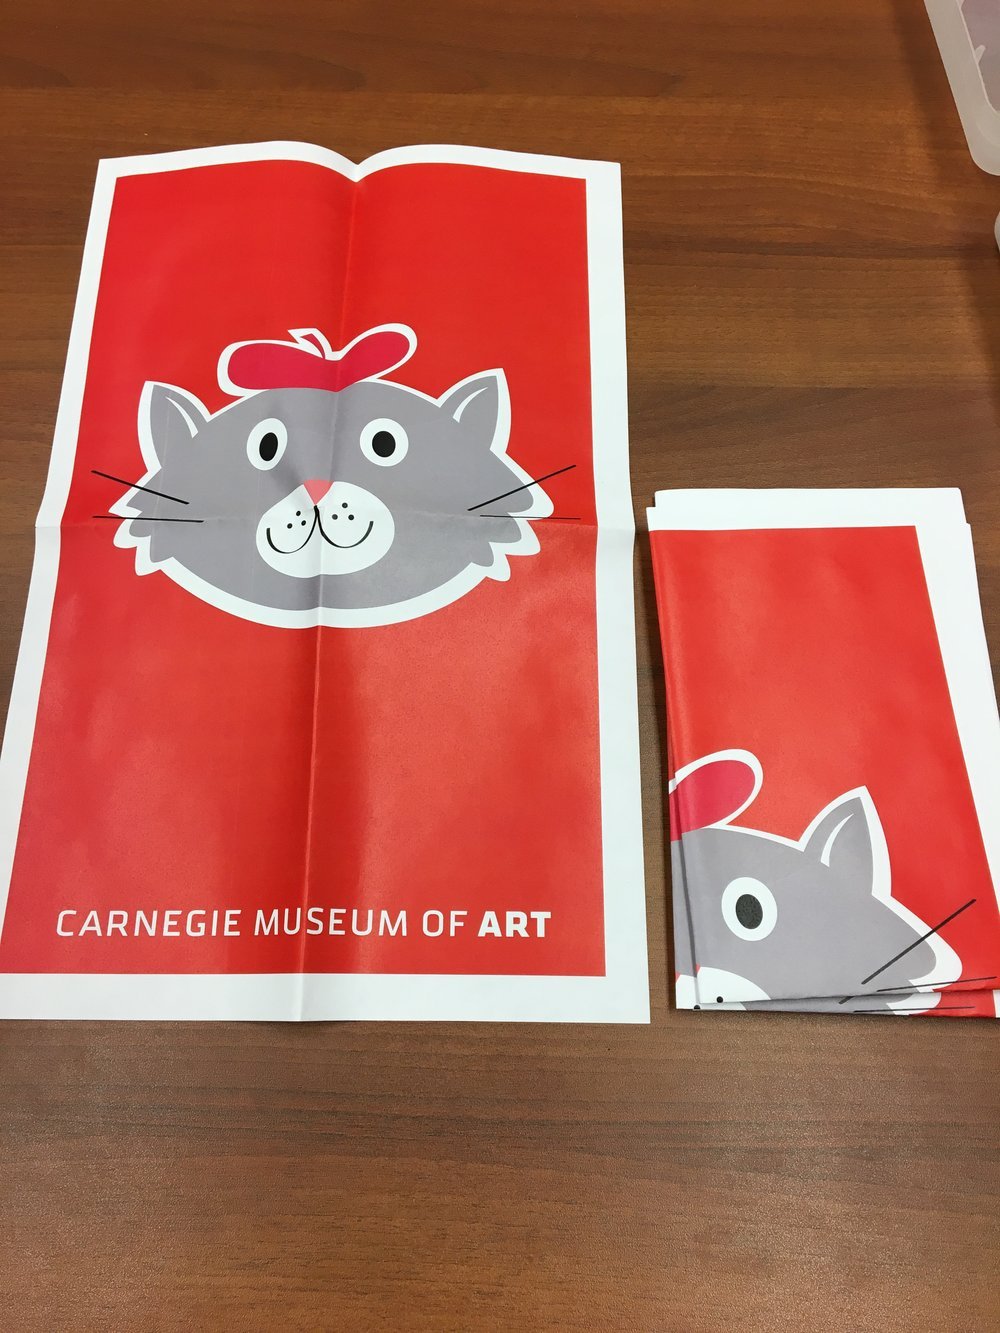 Carnegie Museum of Art Art Cat posters for distribution